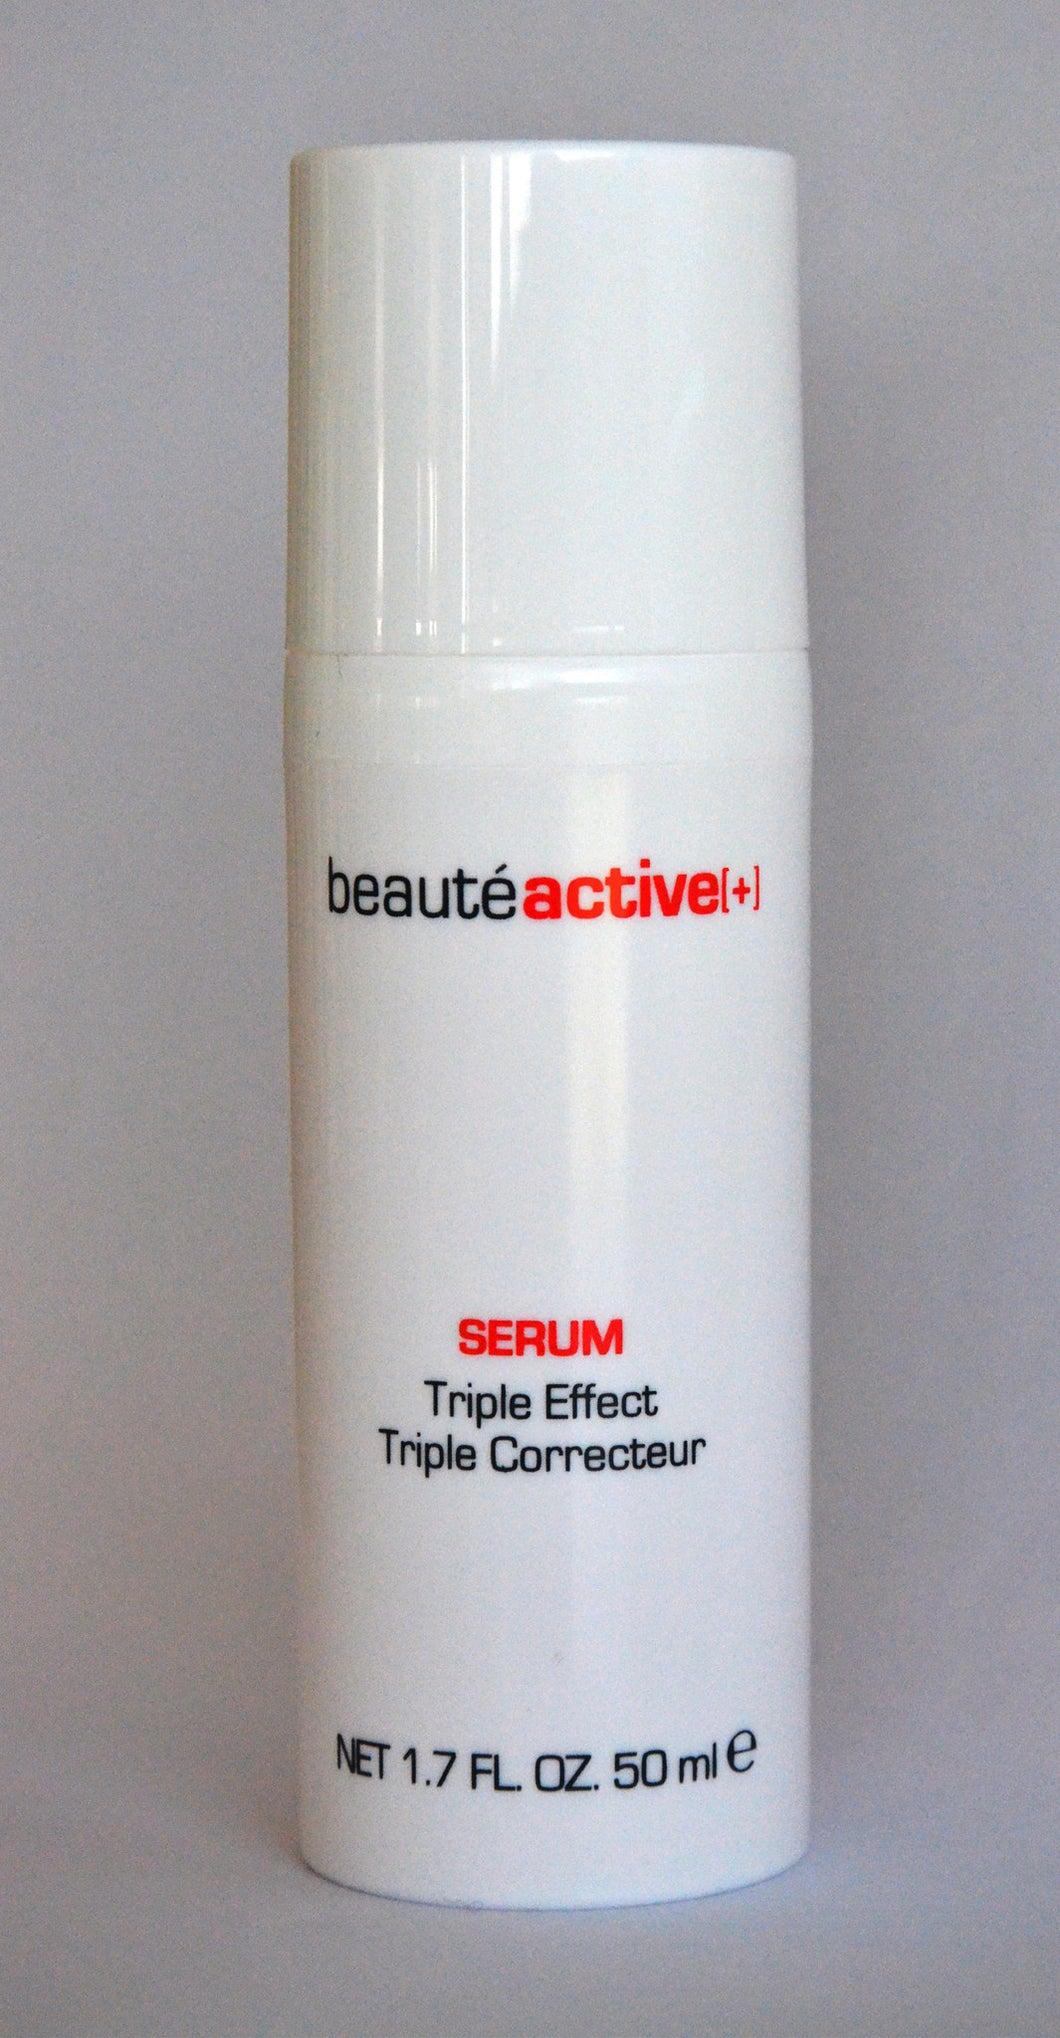 Beaute Active Triple Effect Serum 50ml